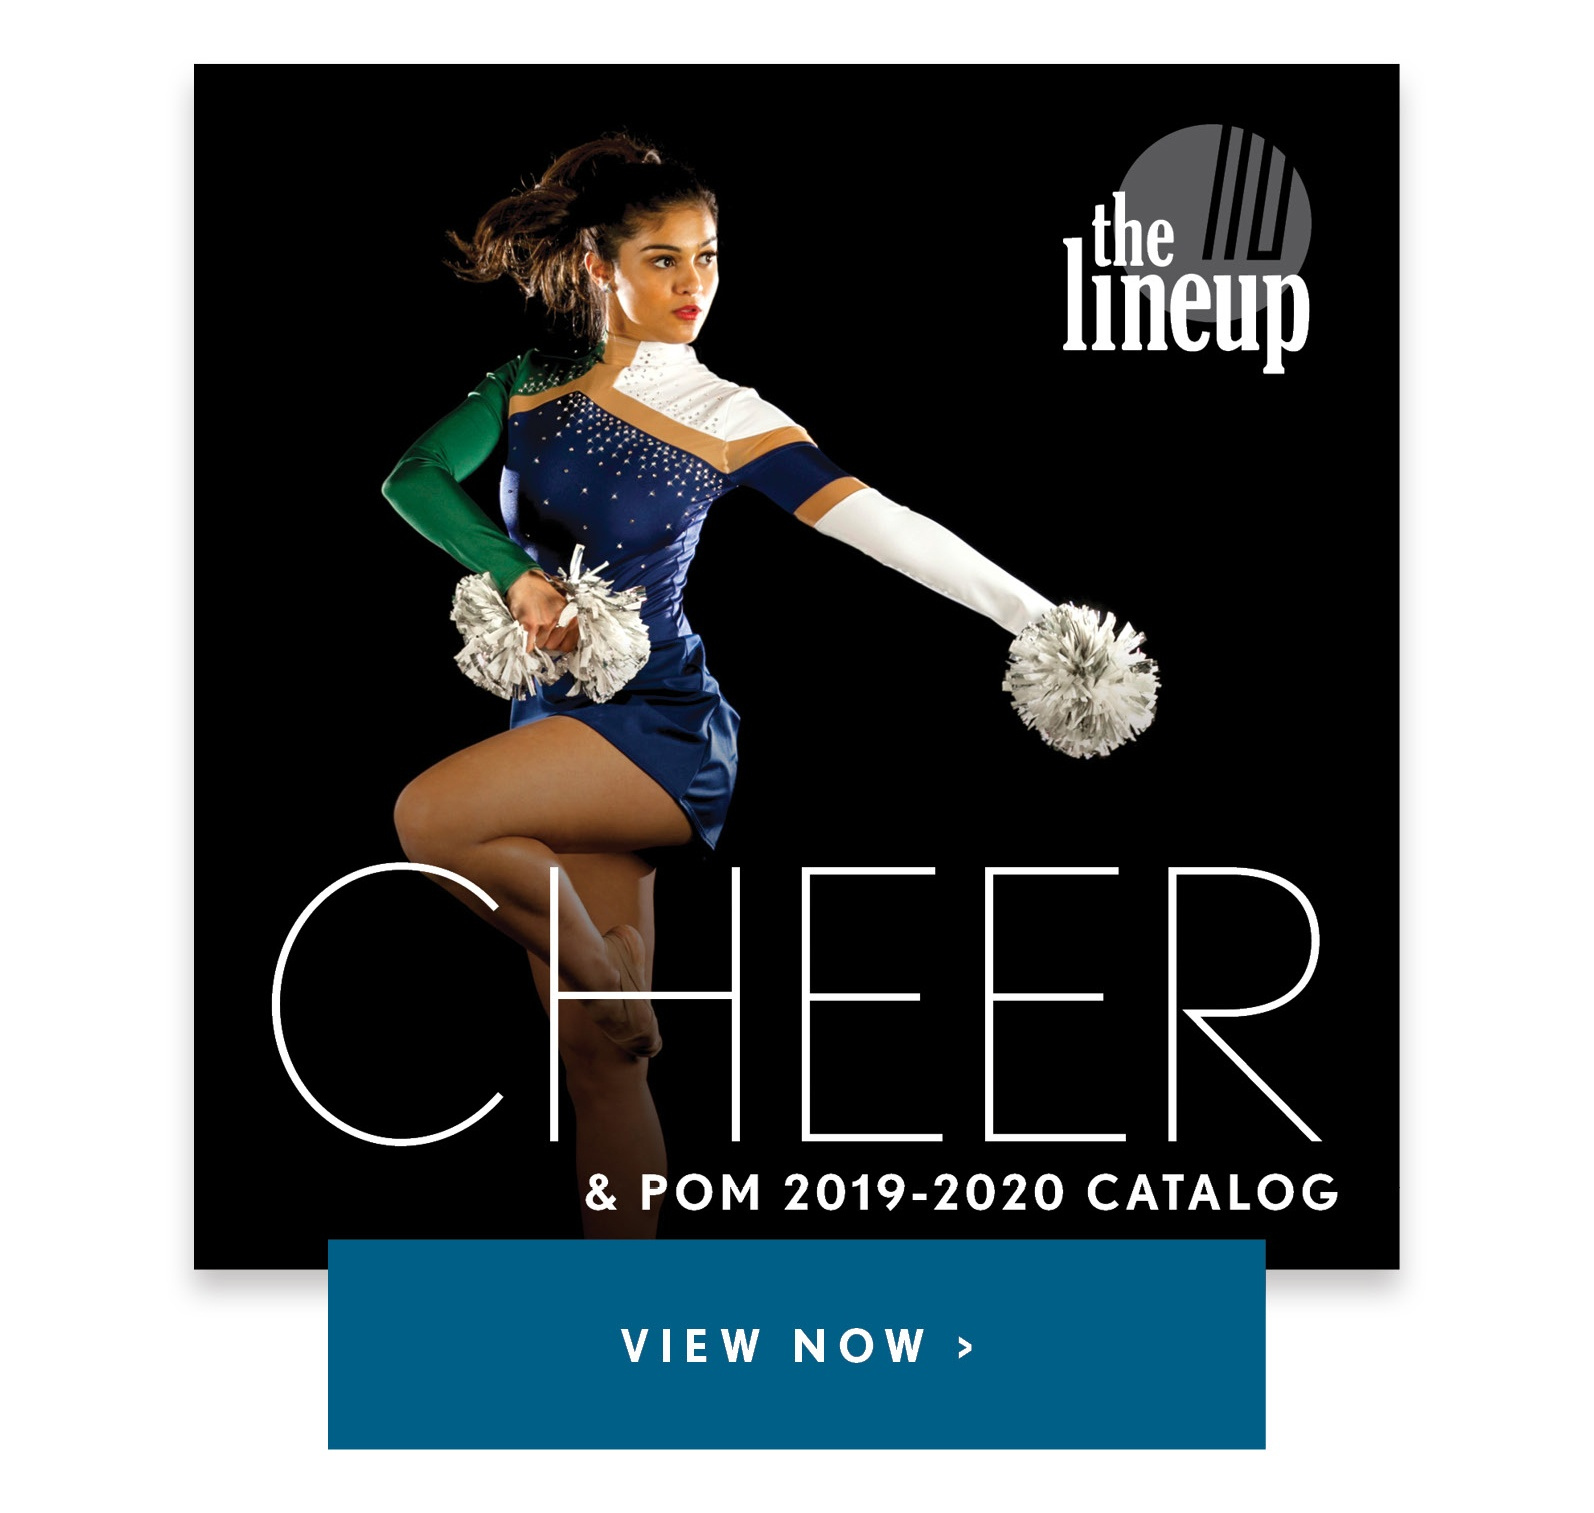 Cheer & Pom 2019-2020 Catalog - View Now!